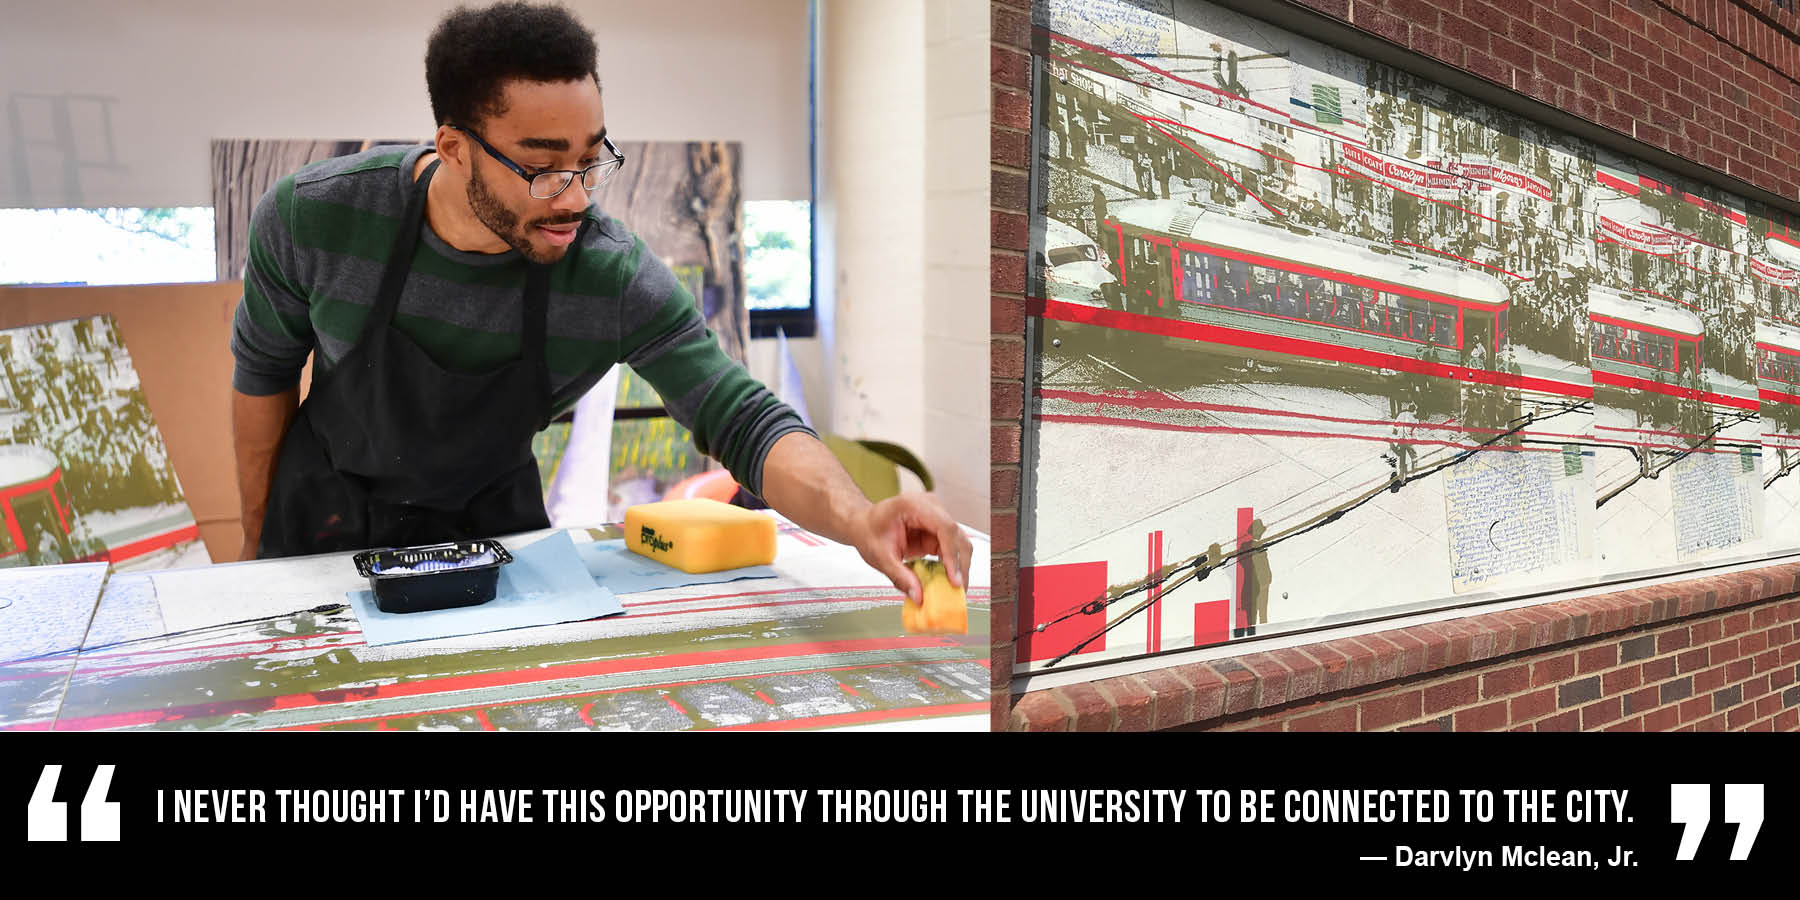 """I never thought I'd have this opportunity through the university to be connected to the city."" Darvlyn Mclean, Jr."